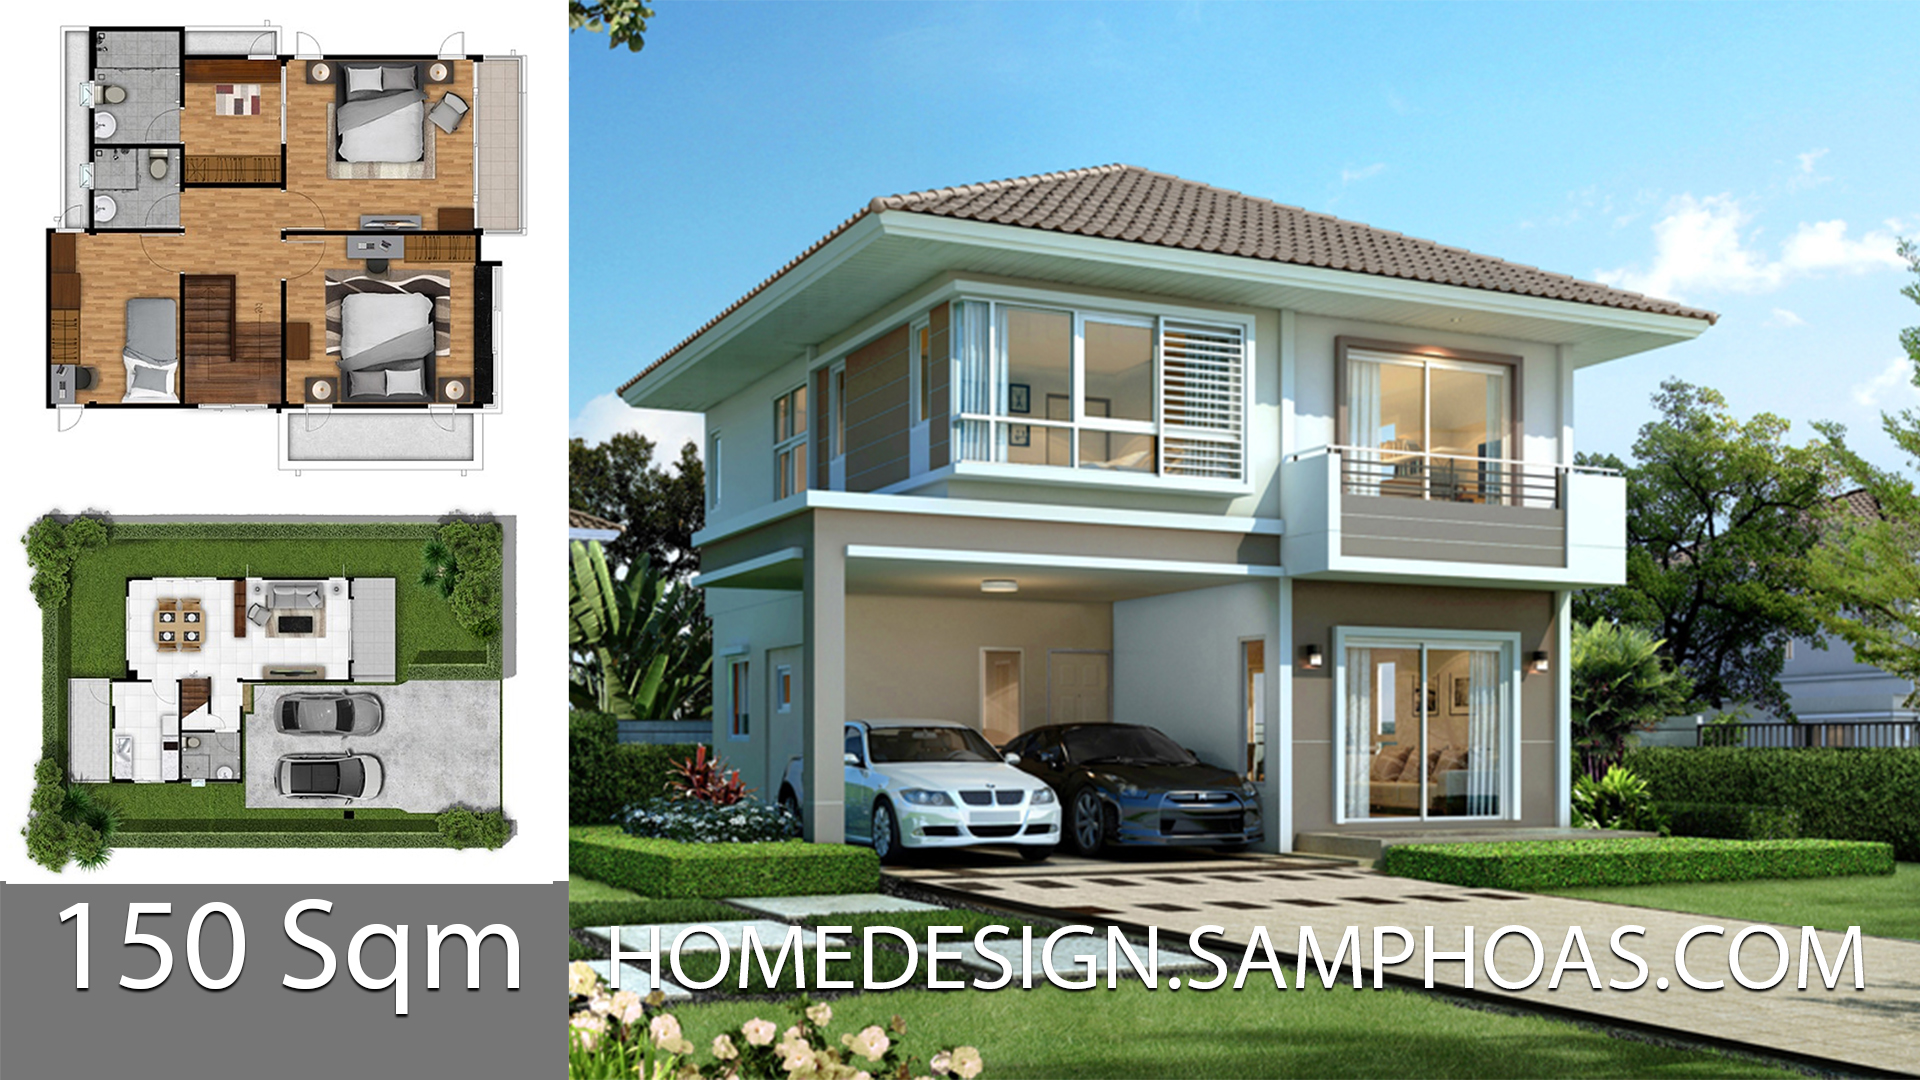 150 Sqm Home design Plans with 3 bedrooms - Home Ideas